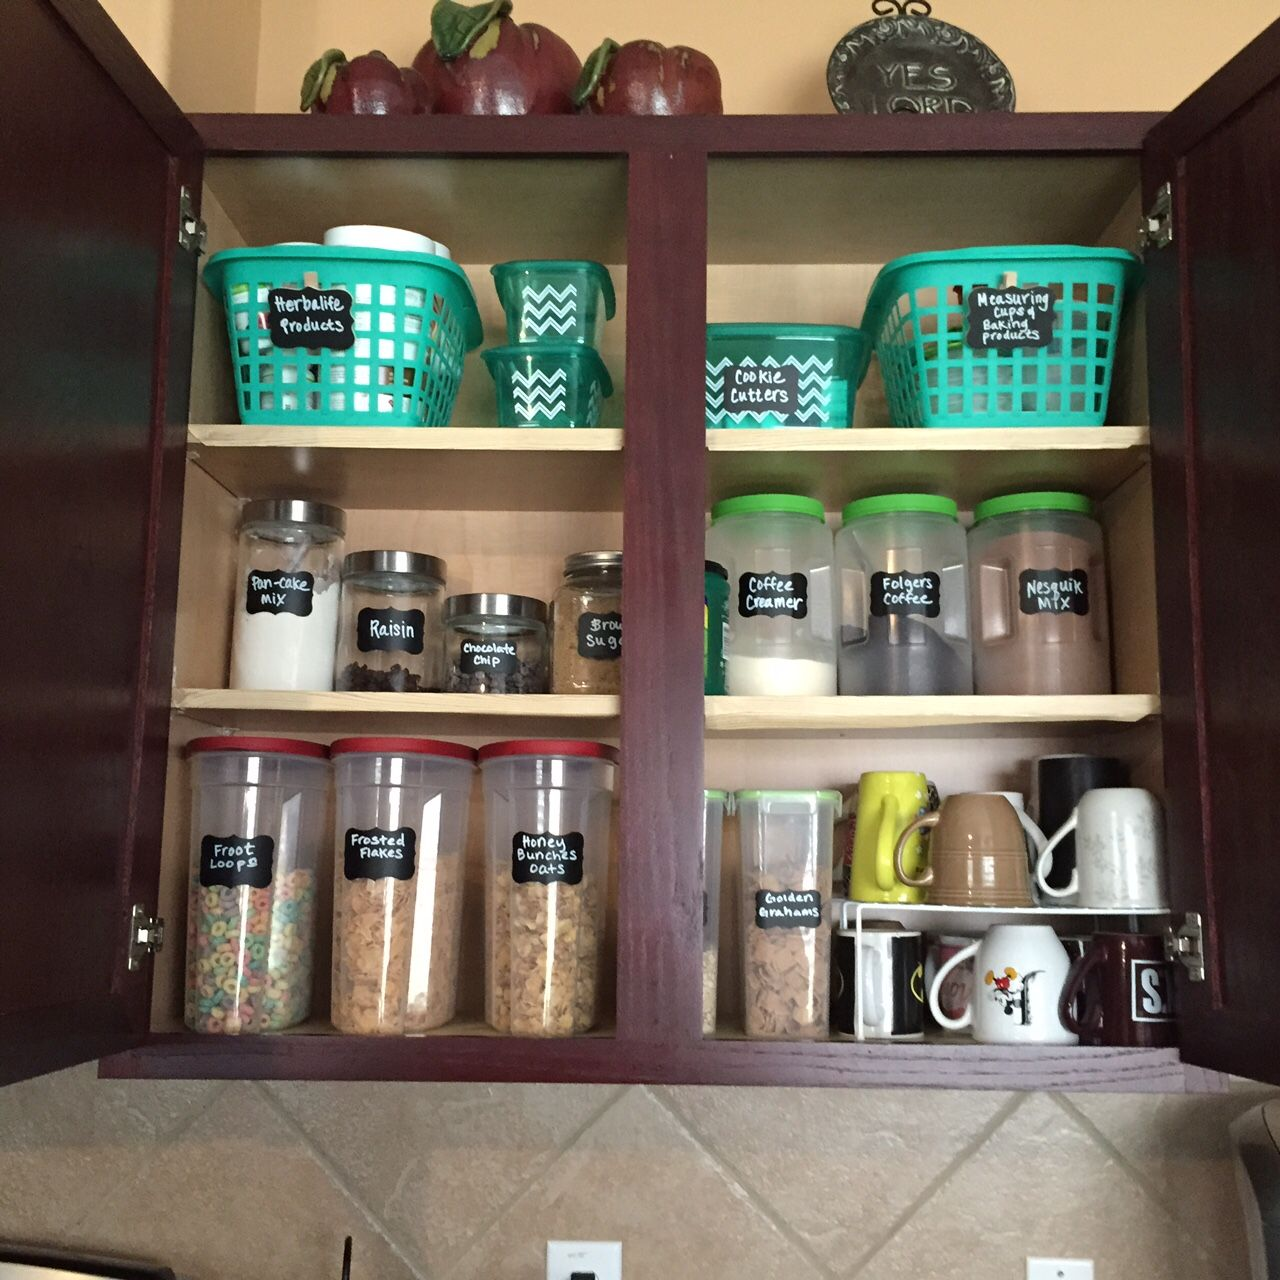 Kitchen Cabinet Stores Narrow Cabinets Ideas To Organize Your All From The Dollar Tree Store Made By Faithfullcraftymom